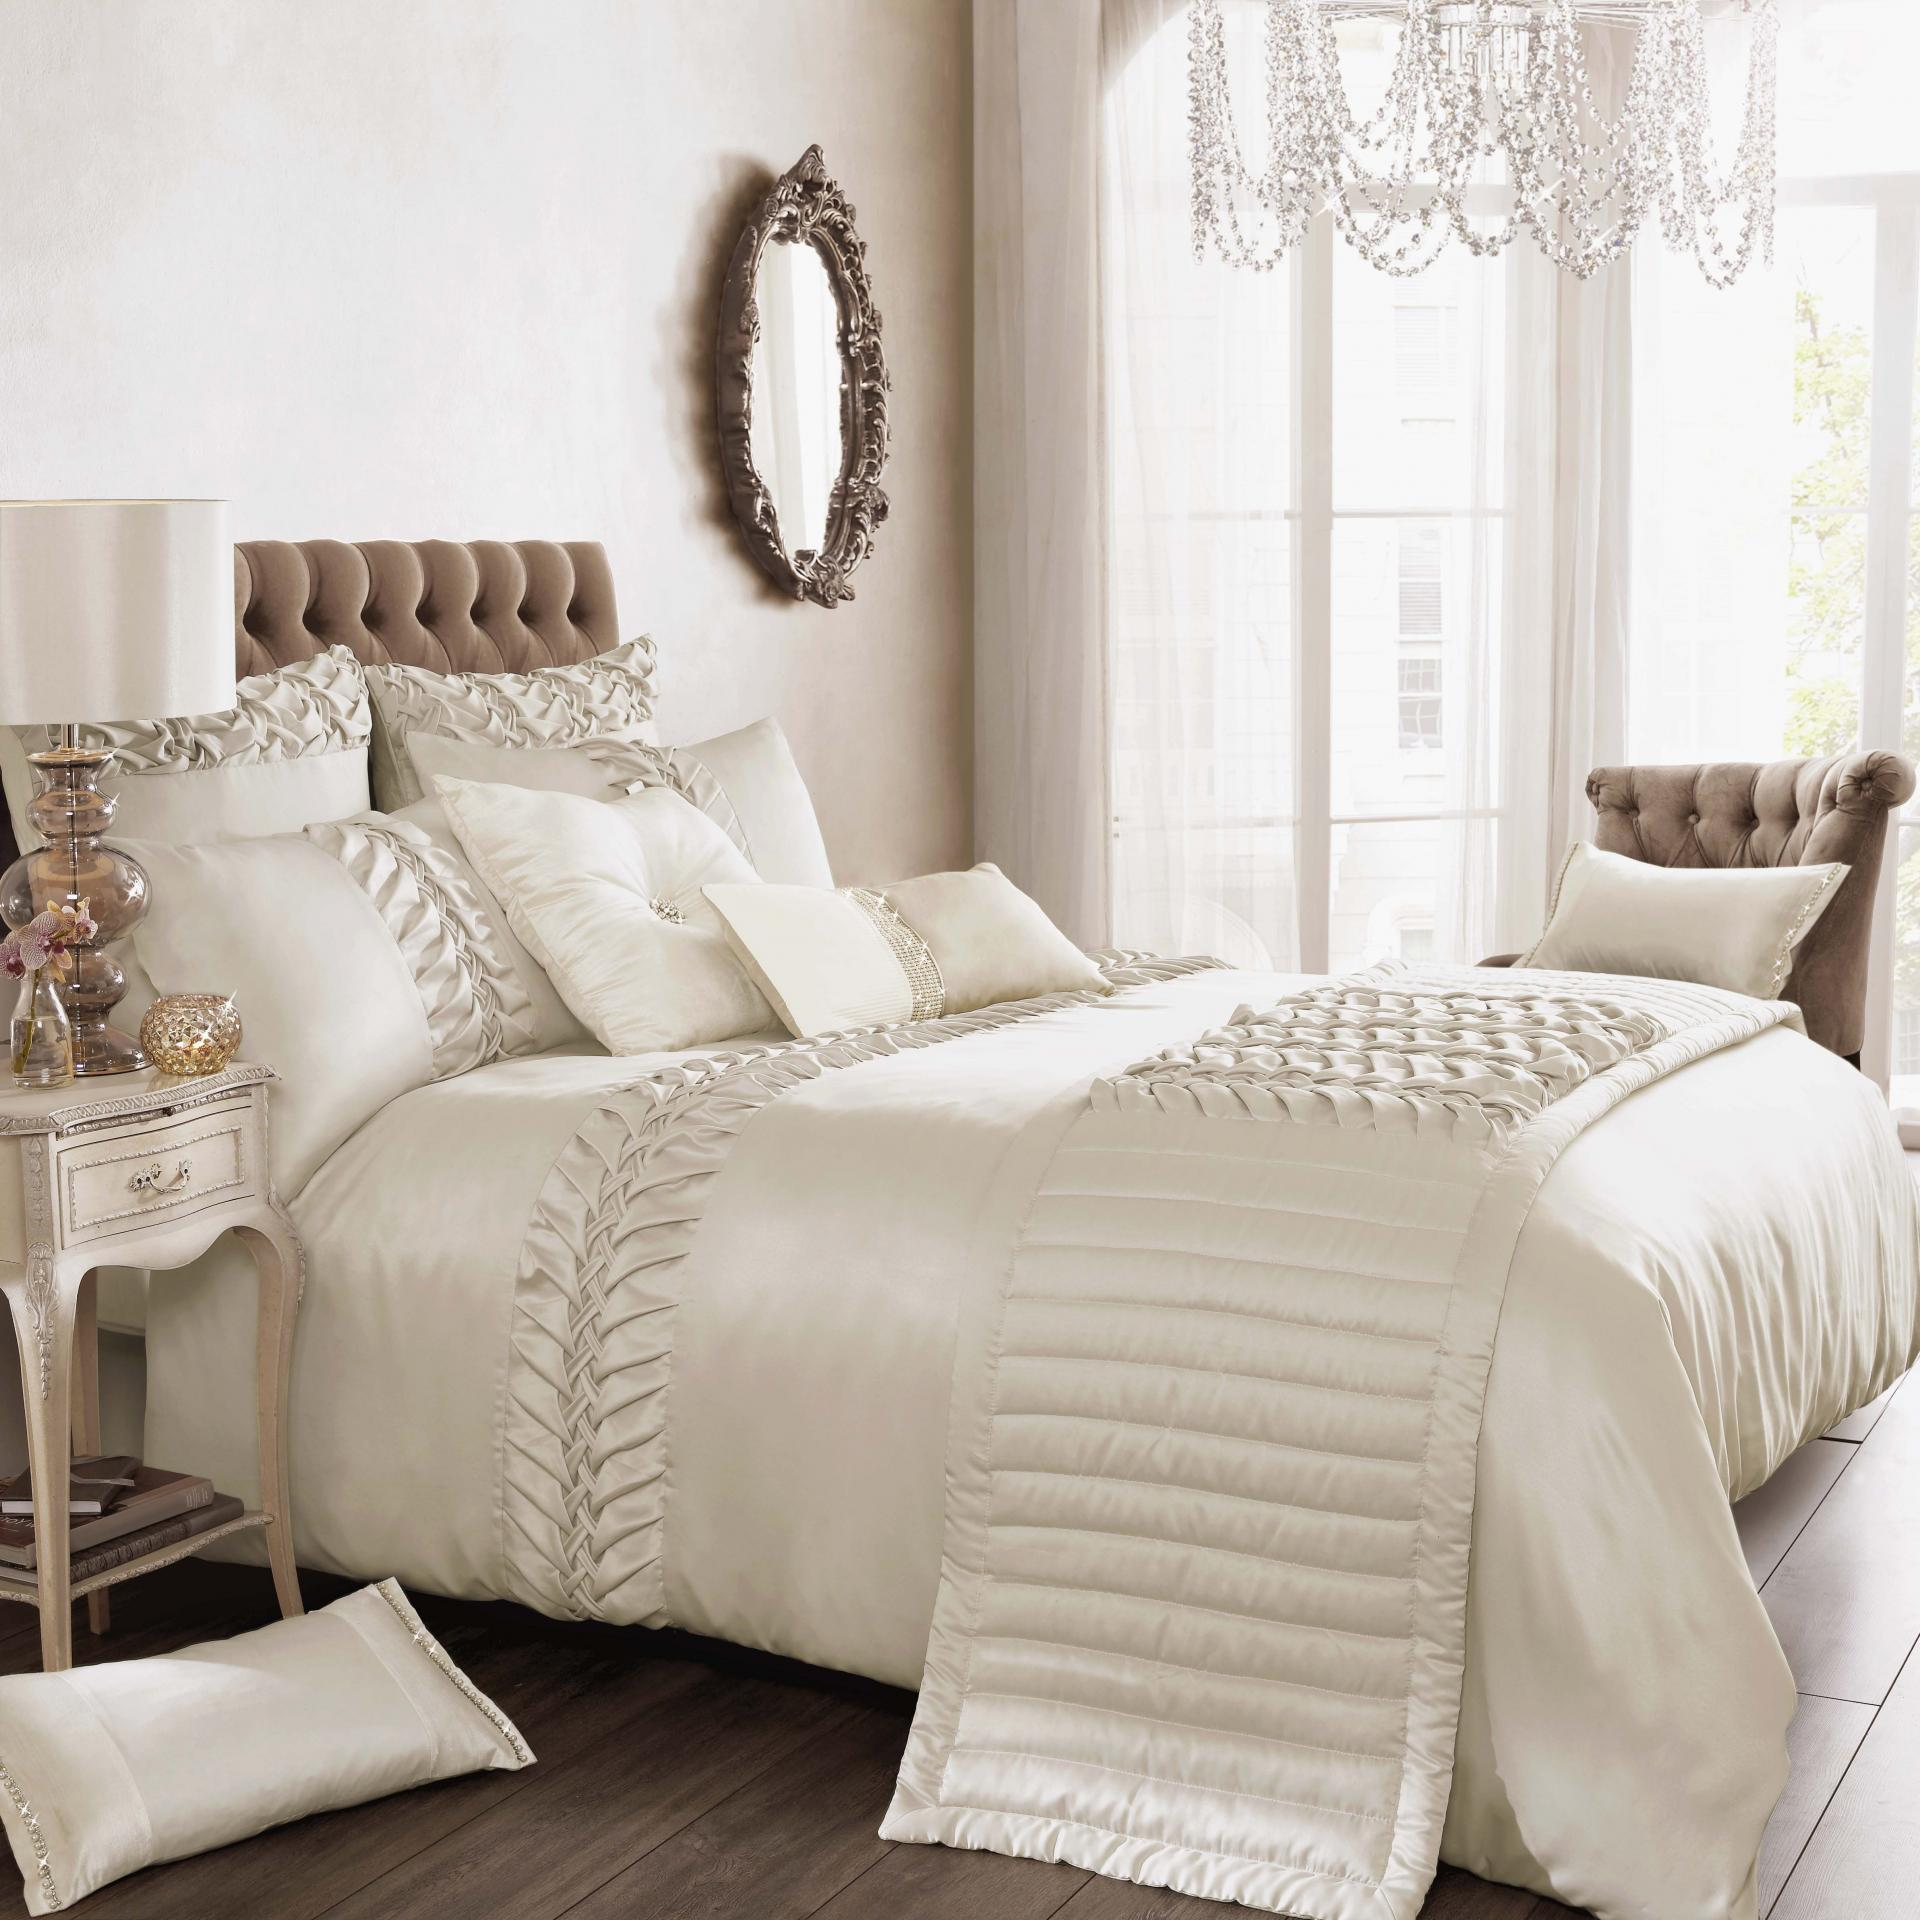 white bedding sets a luxury bedding set